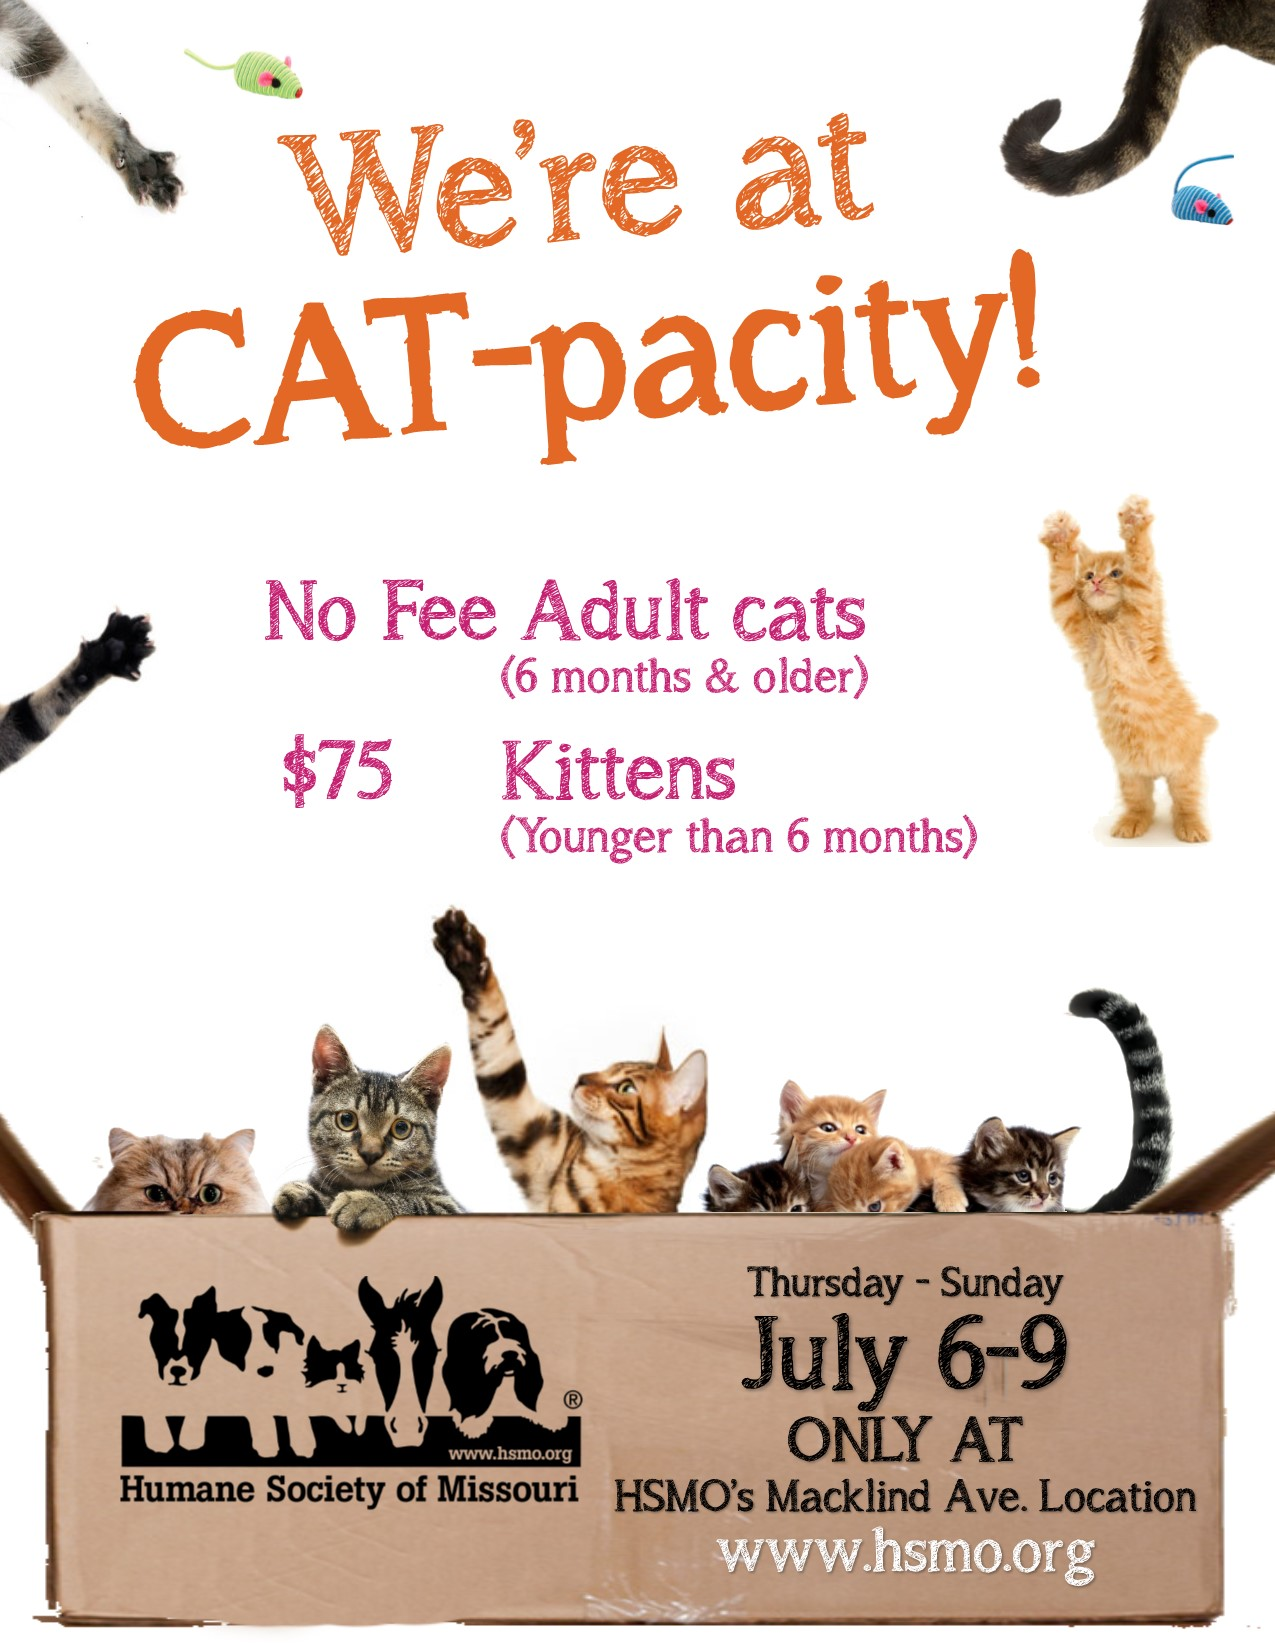 Visit the HUmane Society of Missouri's 1201 Macklind location July 6-9 for no fee cat adoptions